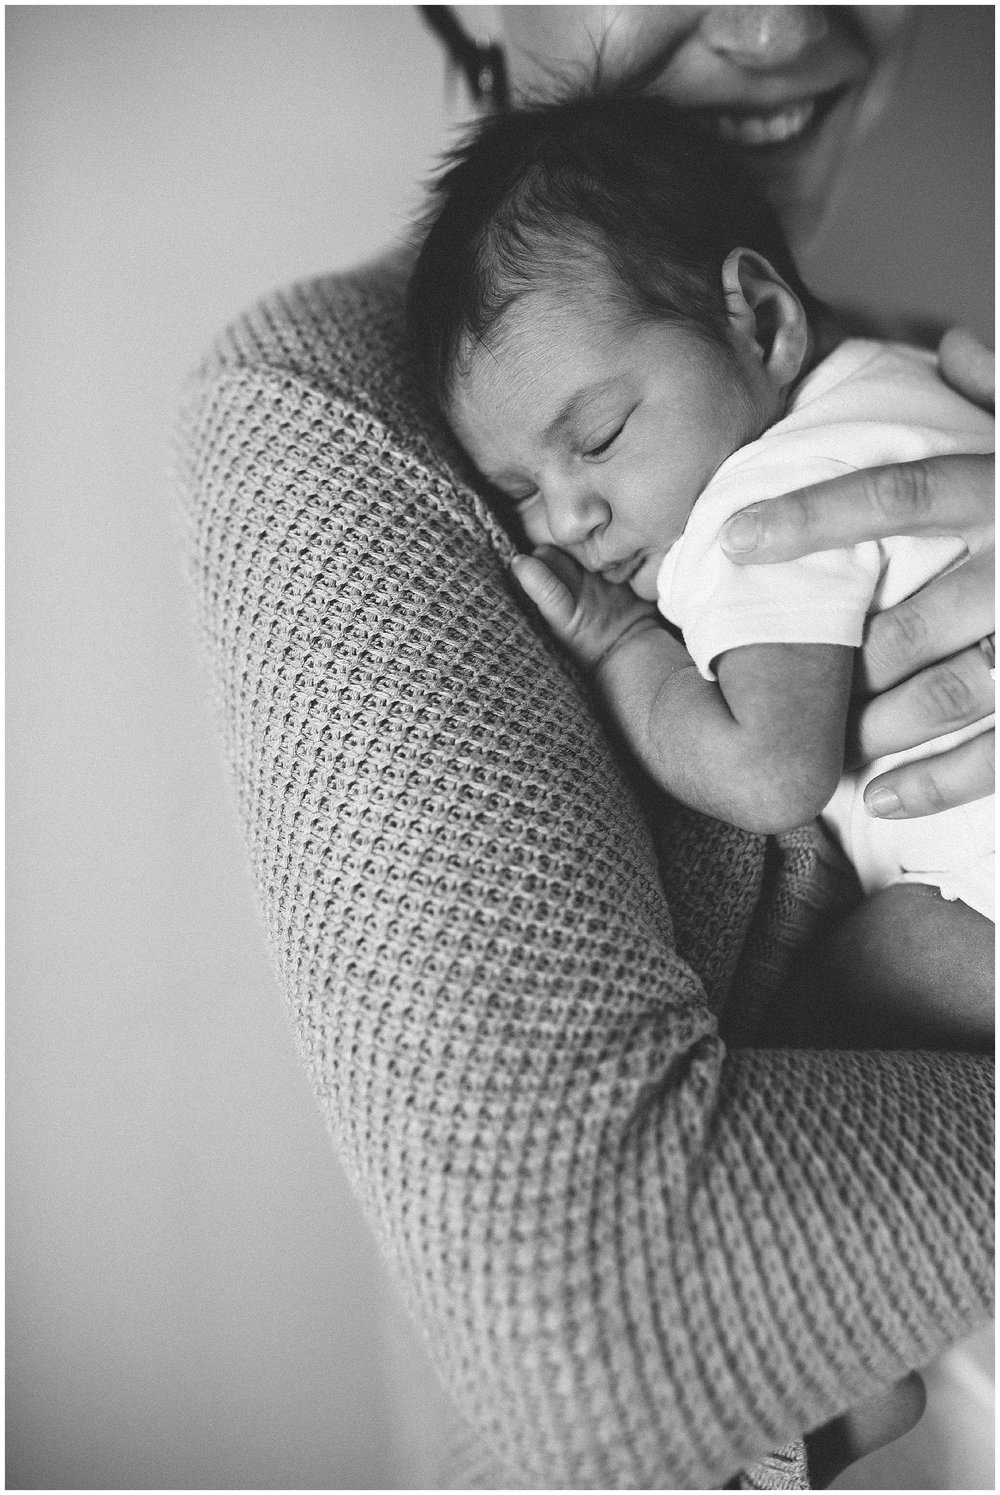 Cornwall-on-Hudson lifestyle newborn photography